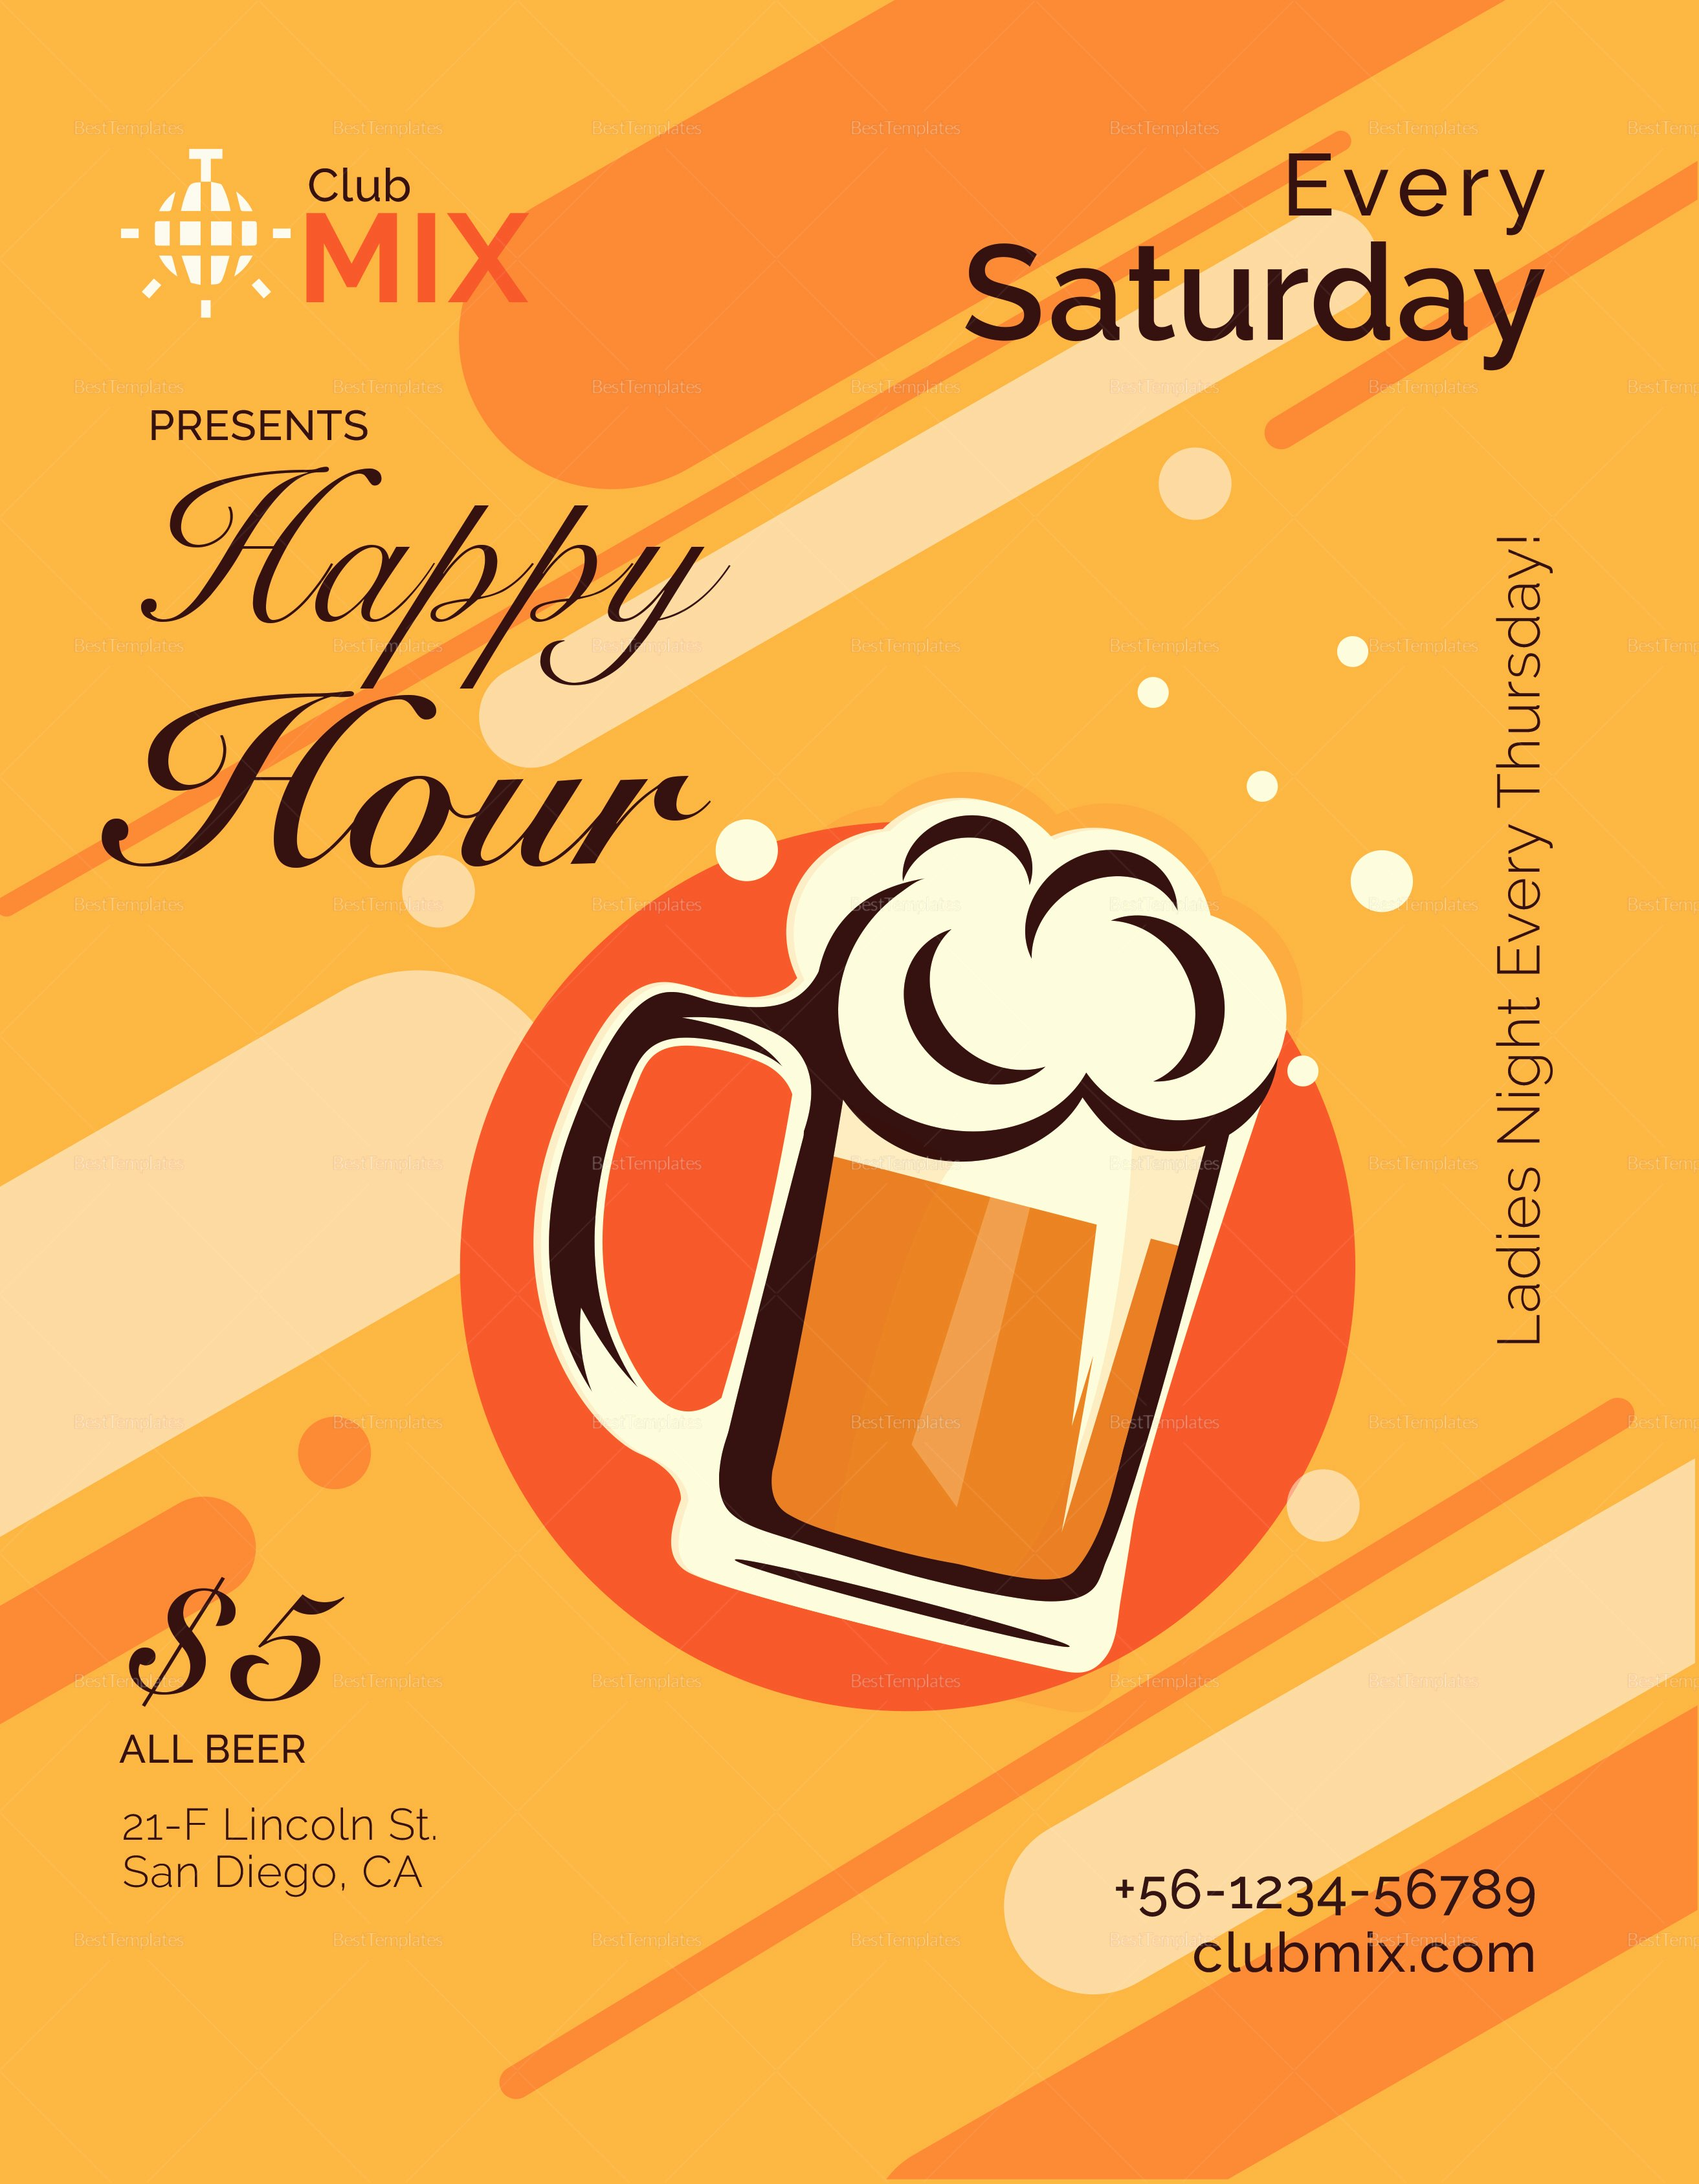 Happy Hour Flyer Template Lovely Happy Hour Flyer Design Template In Psd Word Publisher Illustrator Indesign